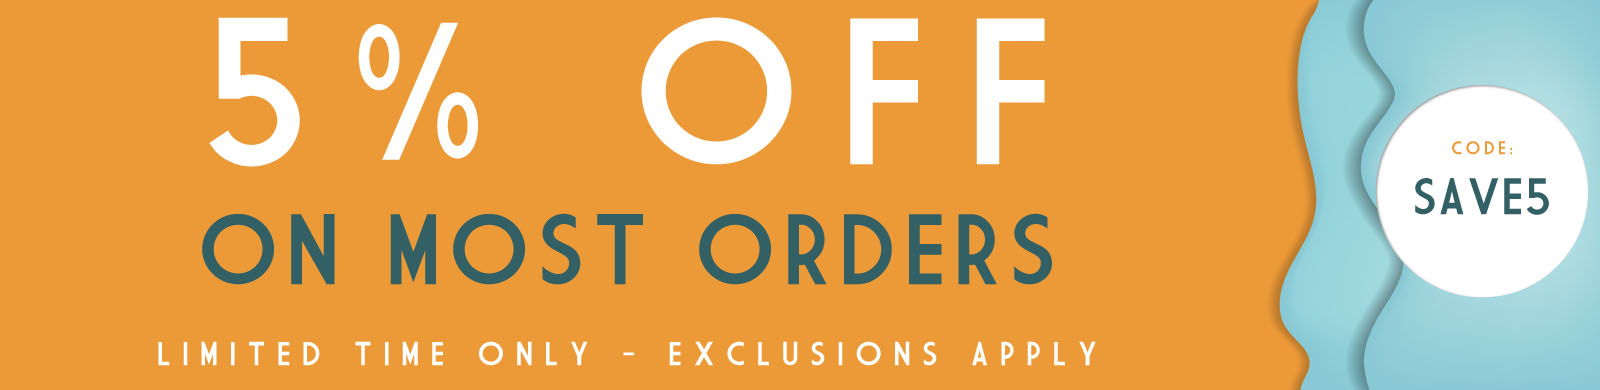 Save 5% On Most Orders